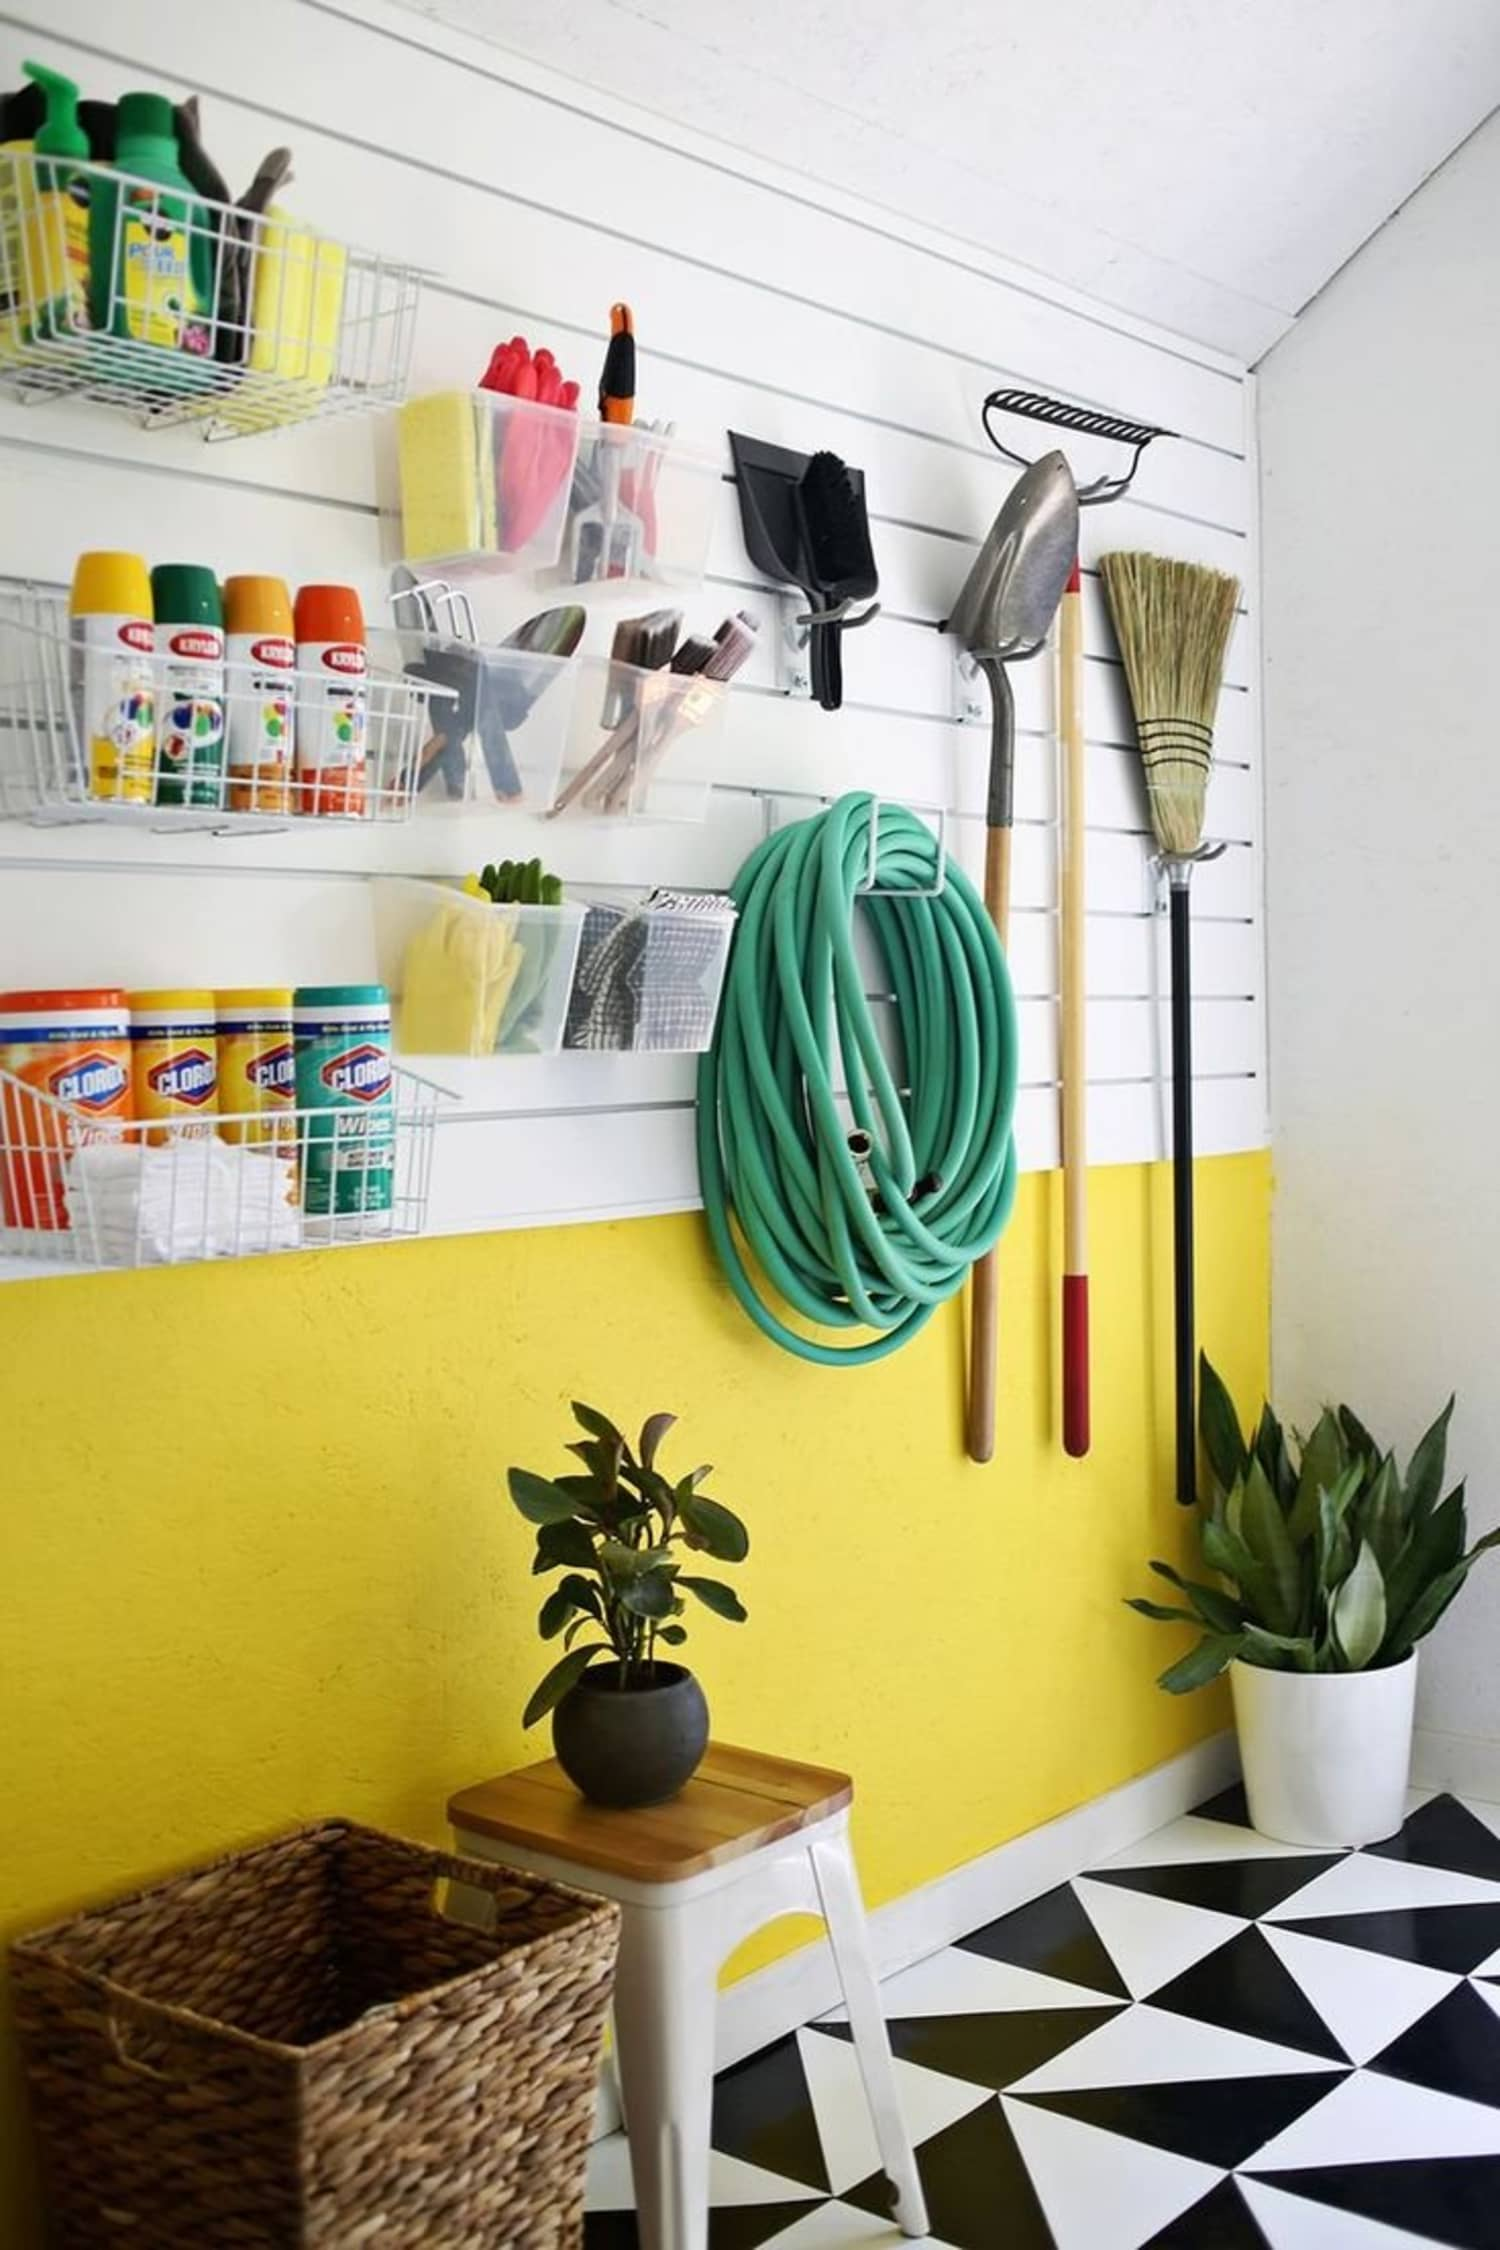 10 Garage Organization Ideas That Will Change Your Life